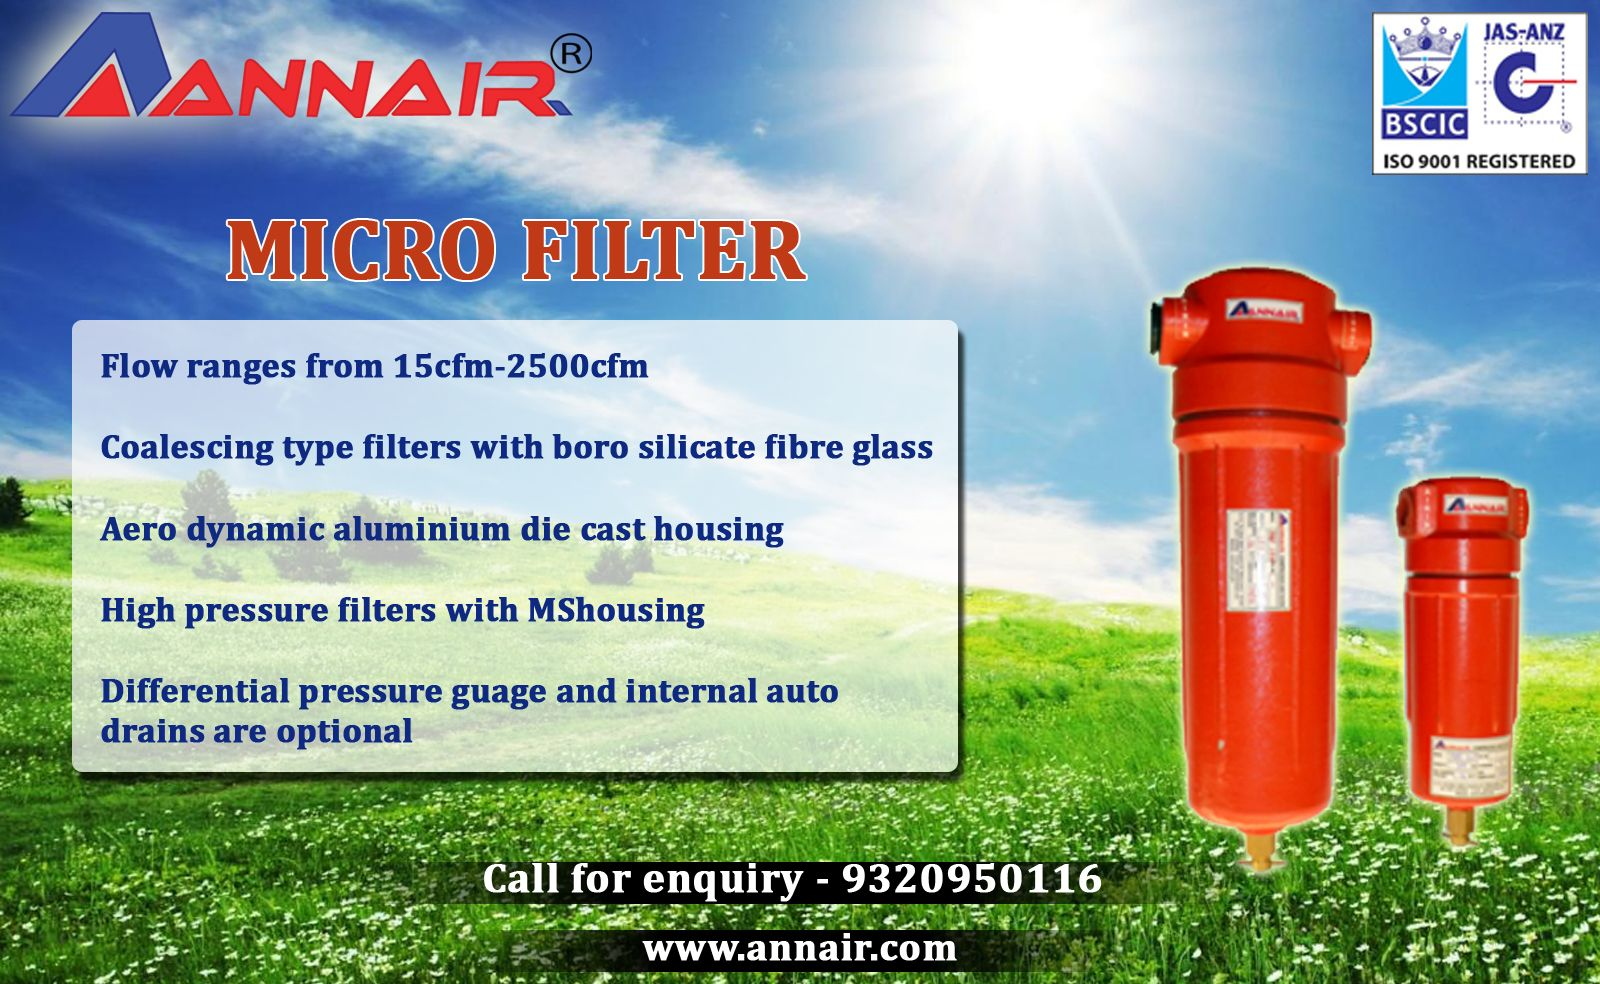 Micro filters designed by Annair Drychill Tech with a